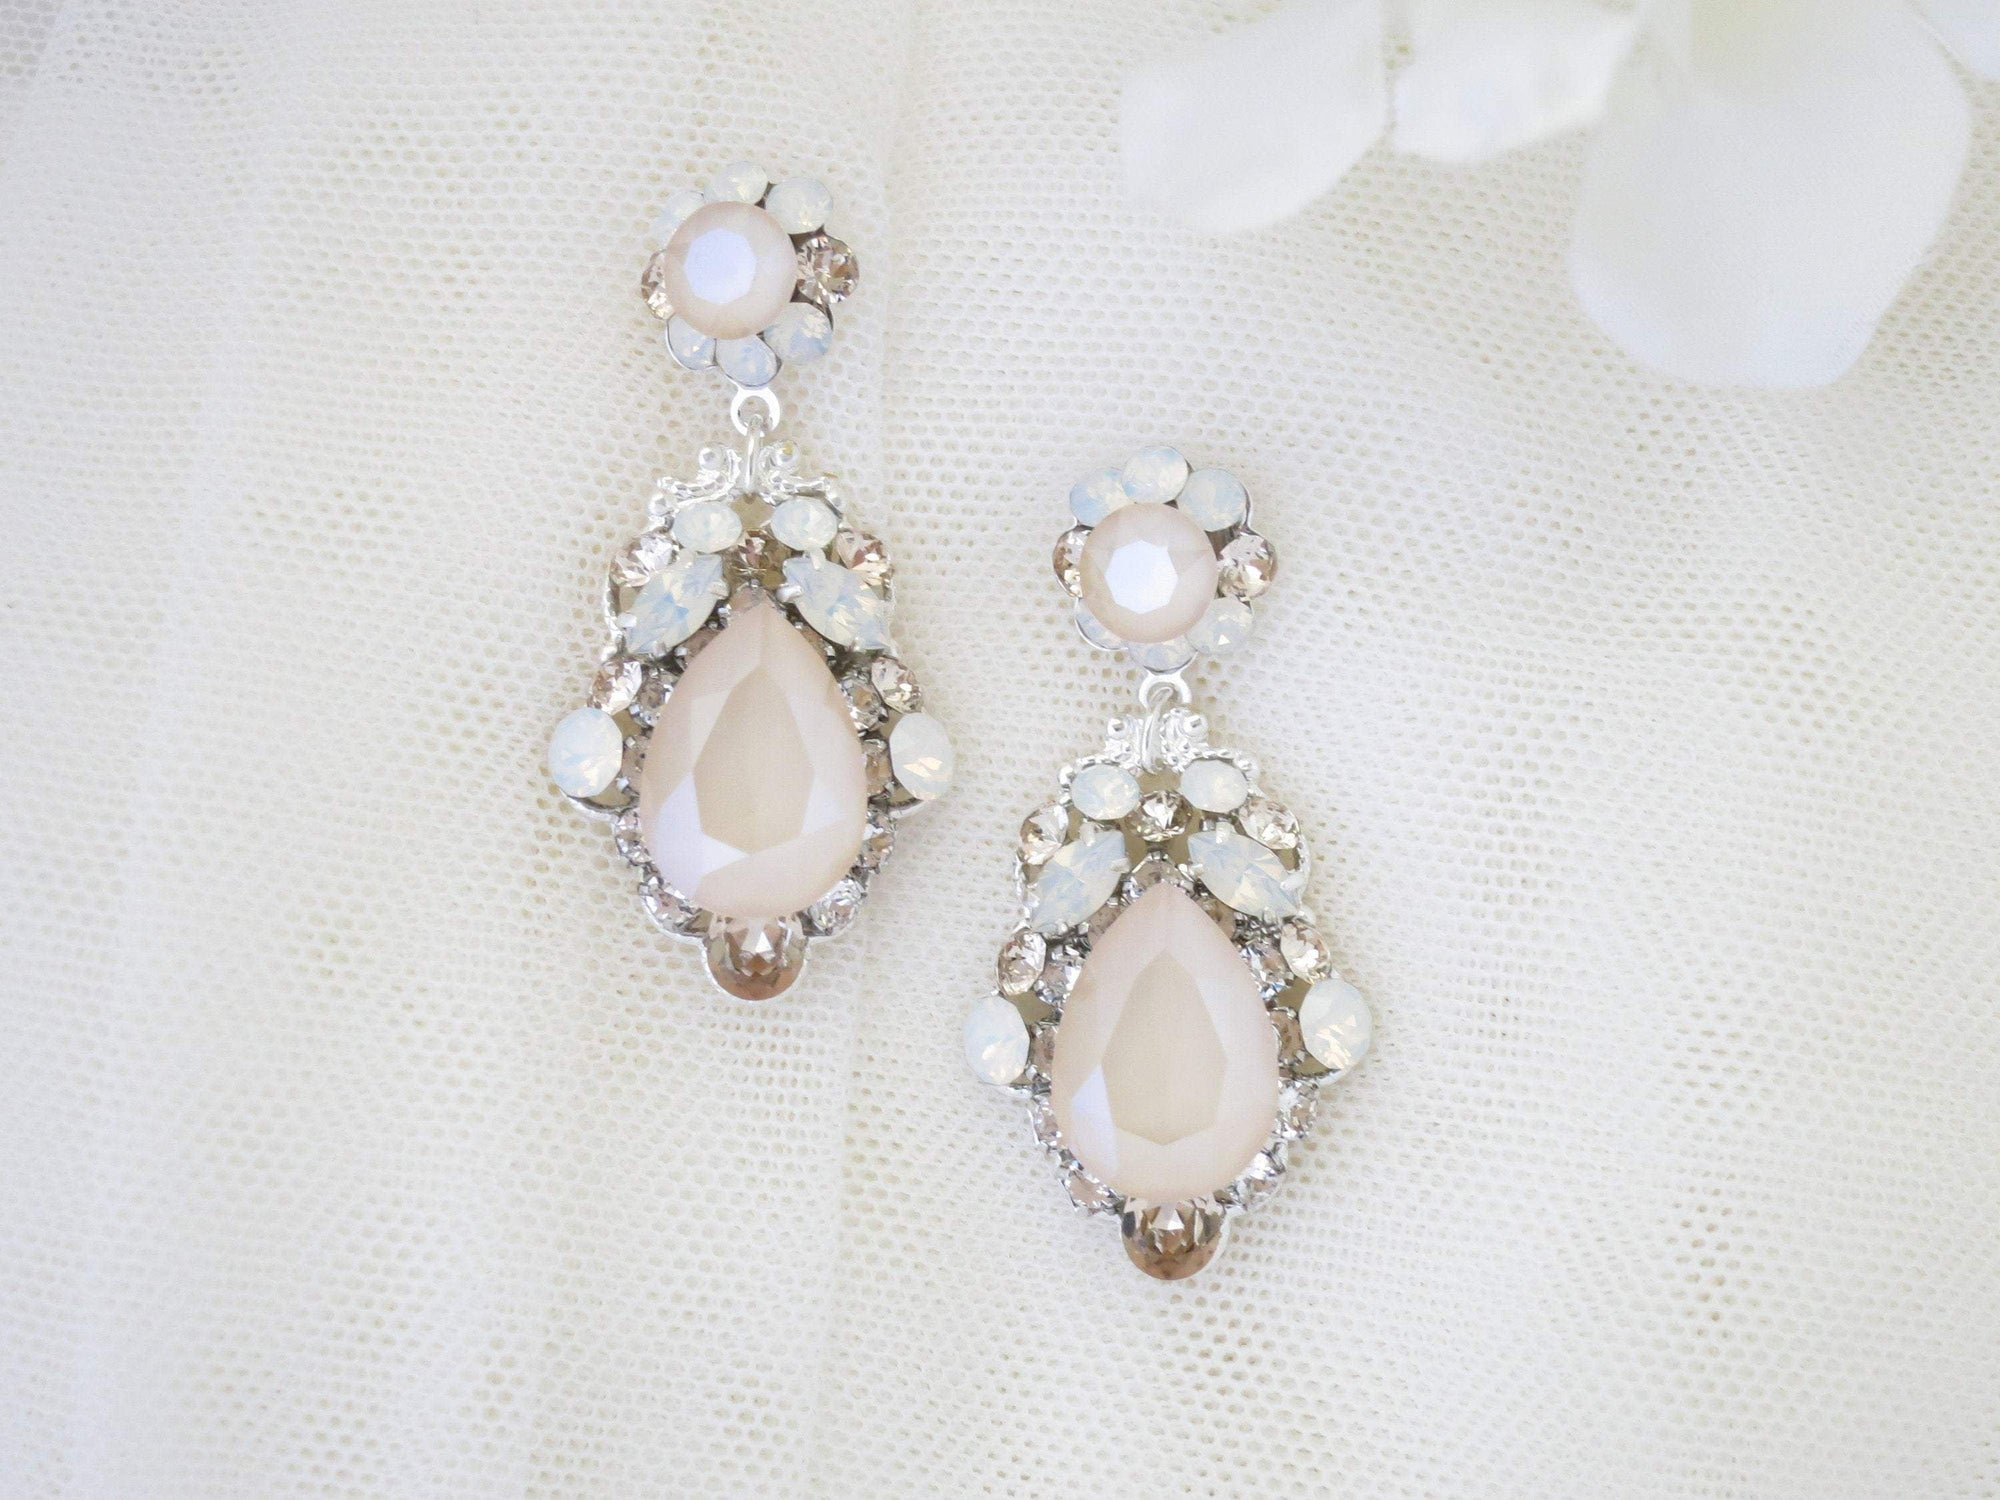 CHRISTINE:  Flirty Teardrop Chandelier Earrings - BlingBaddaBoom - Minimalist, Vintage, Modern Wedding and Bridal Jewelry